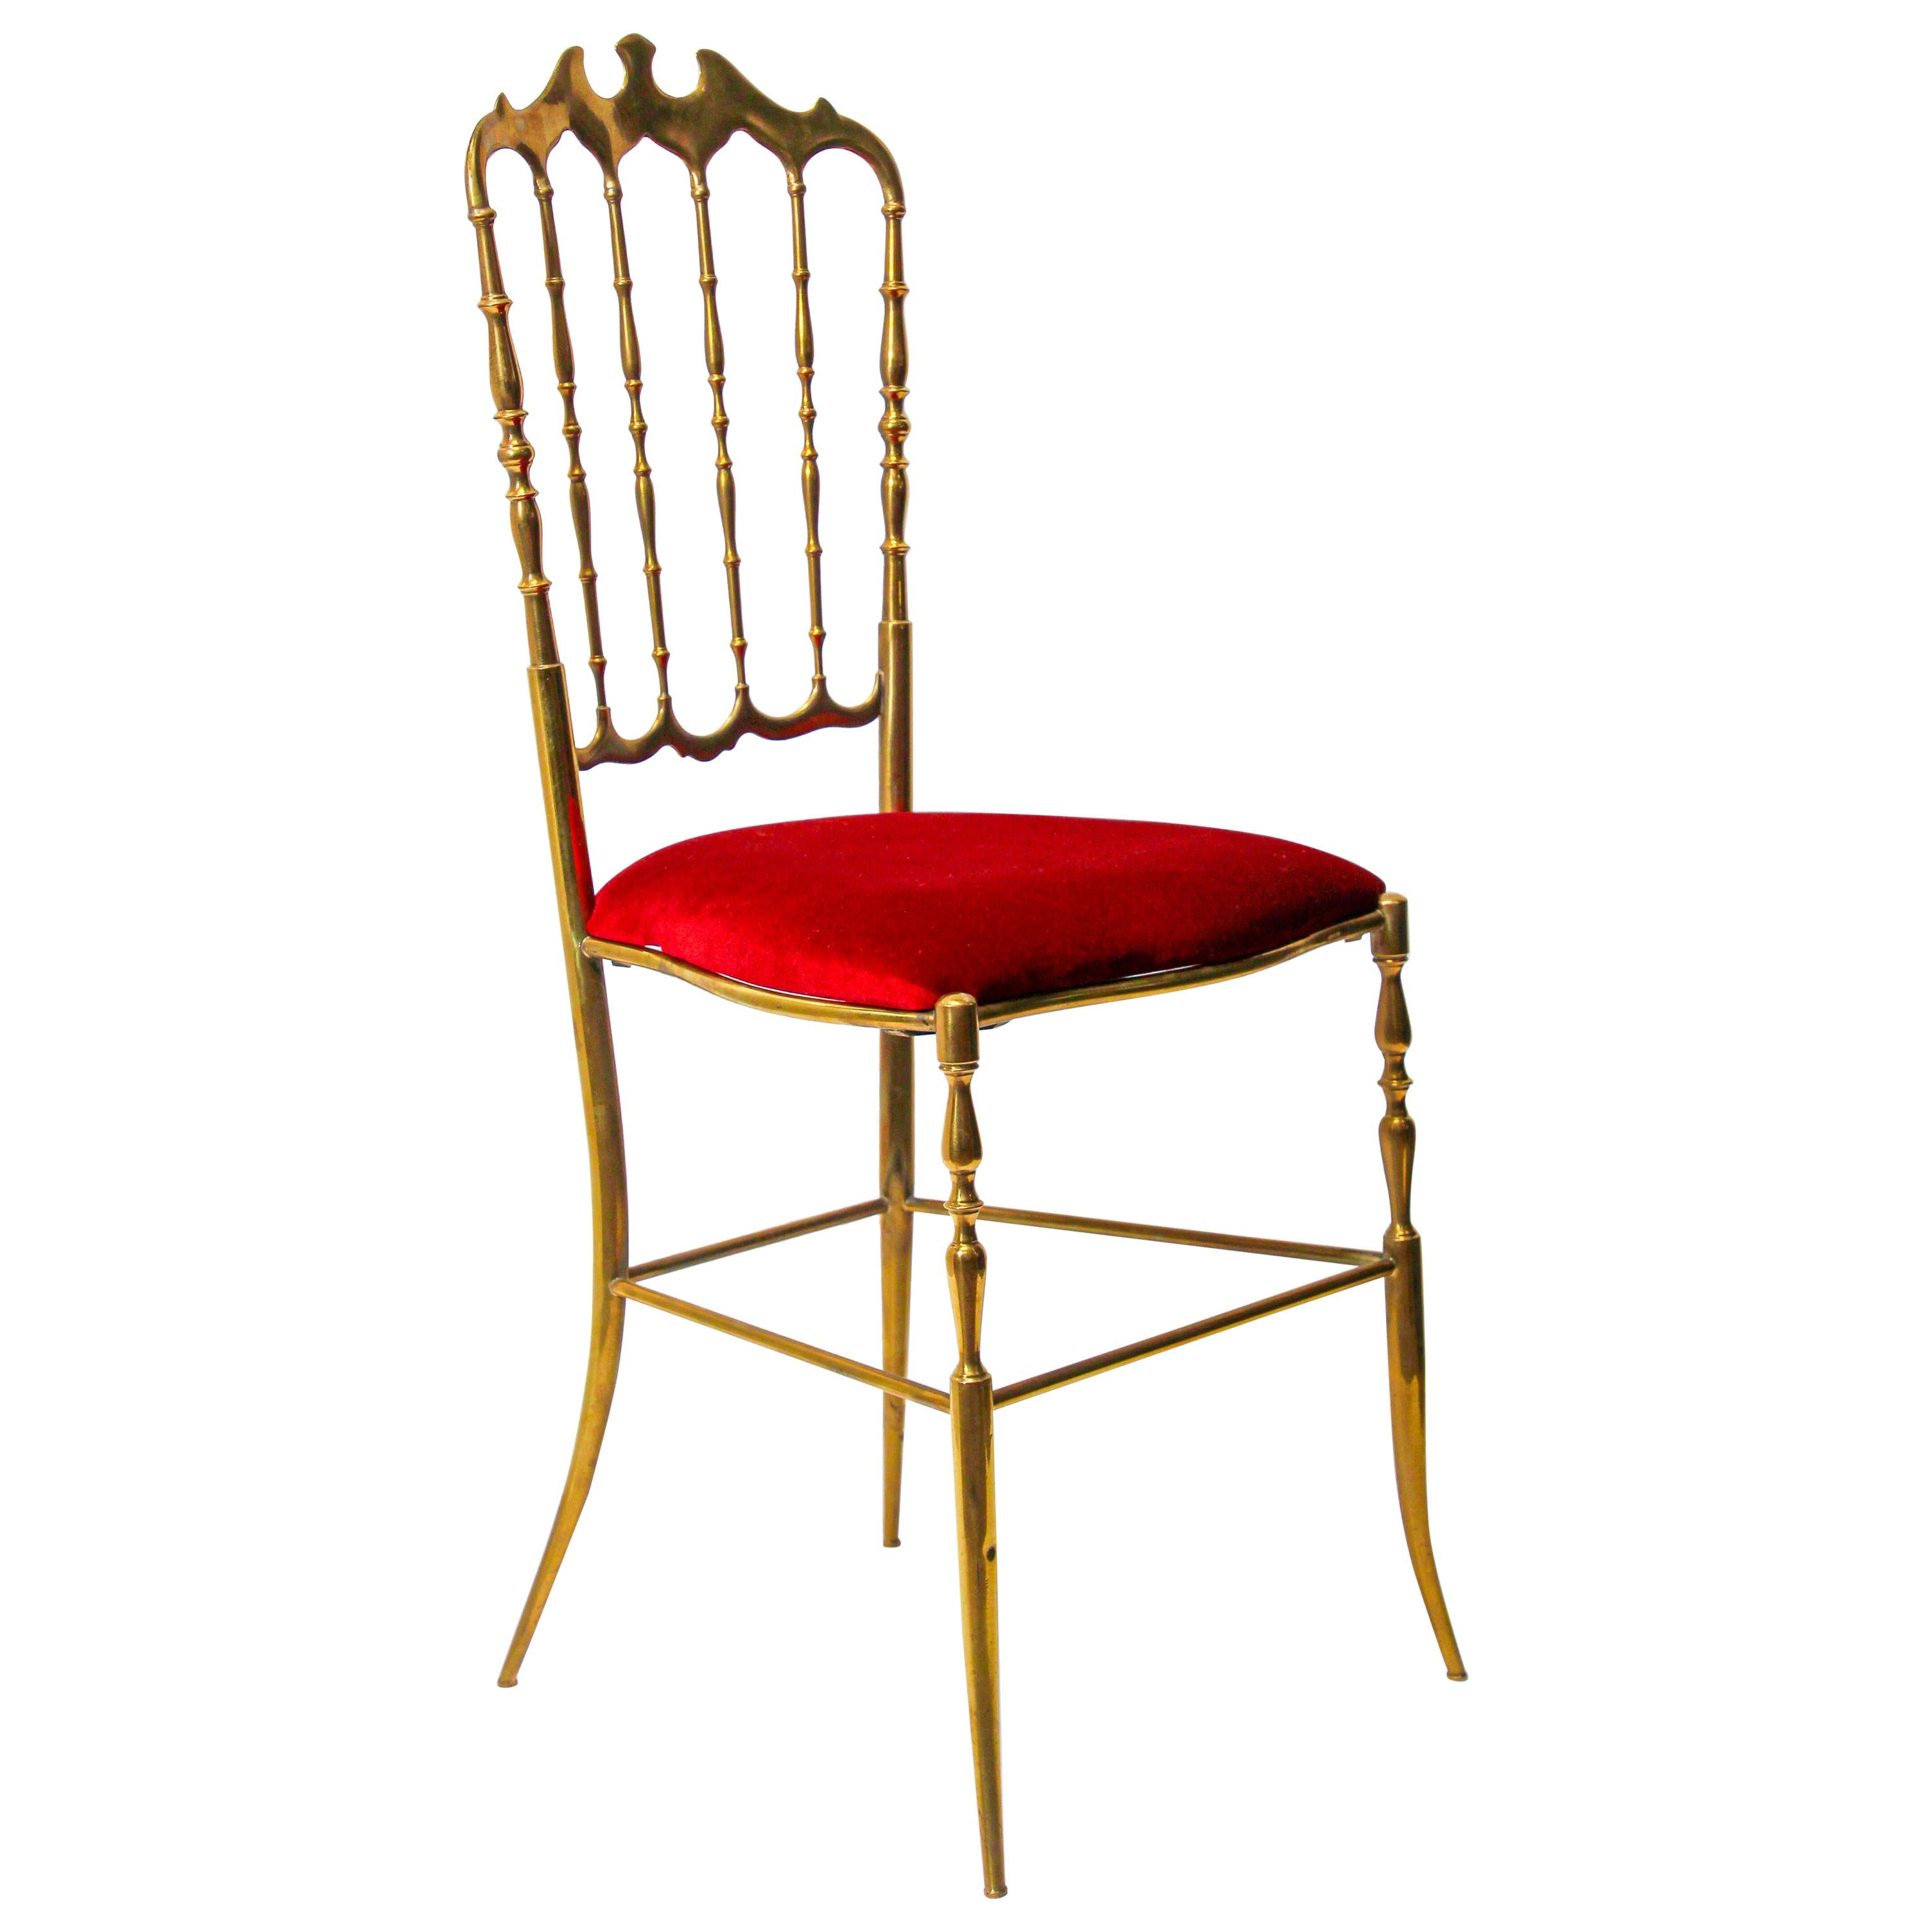 Polished Brass Chiavari Chairs with Red Velvet, Italy, 1960s